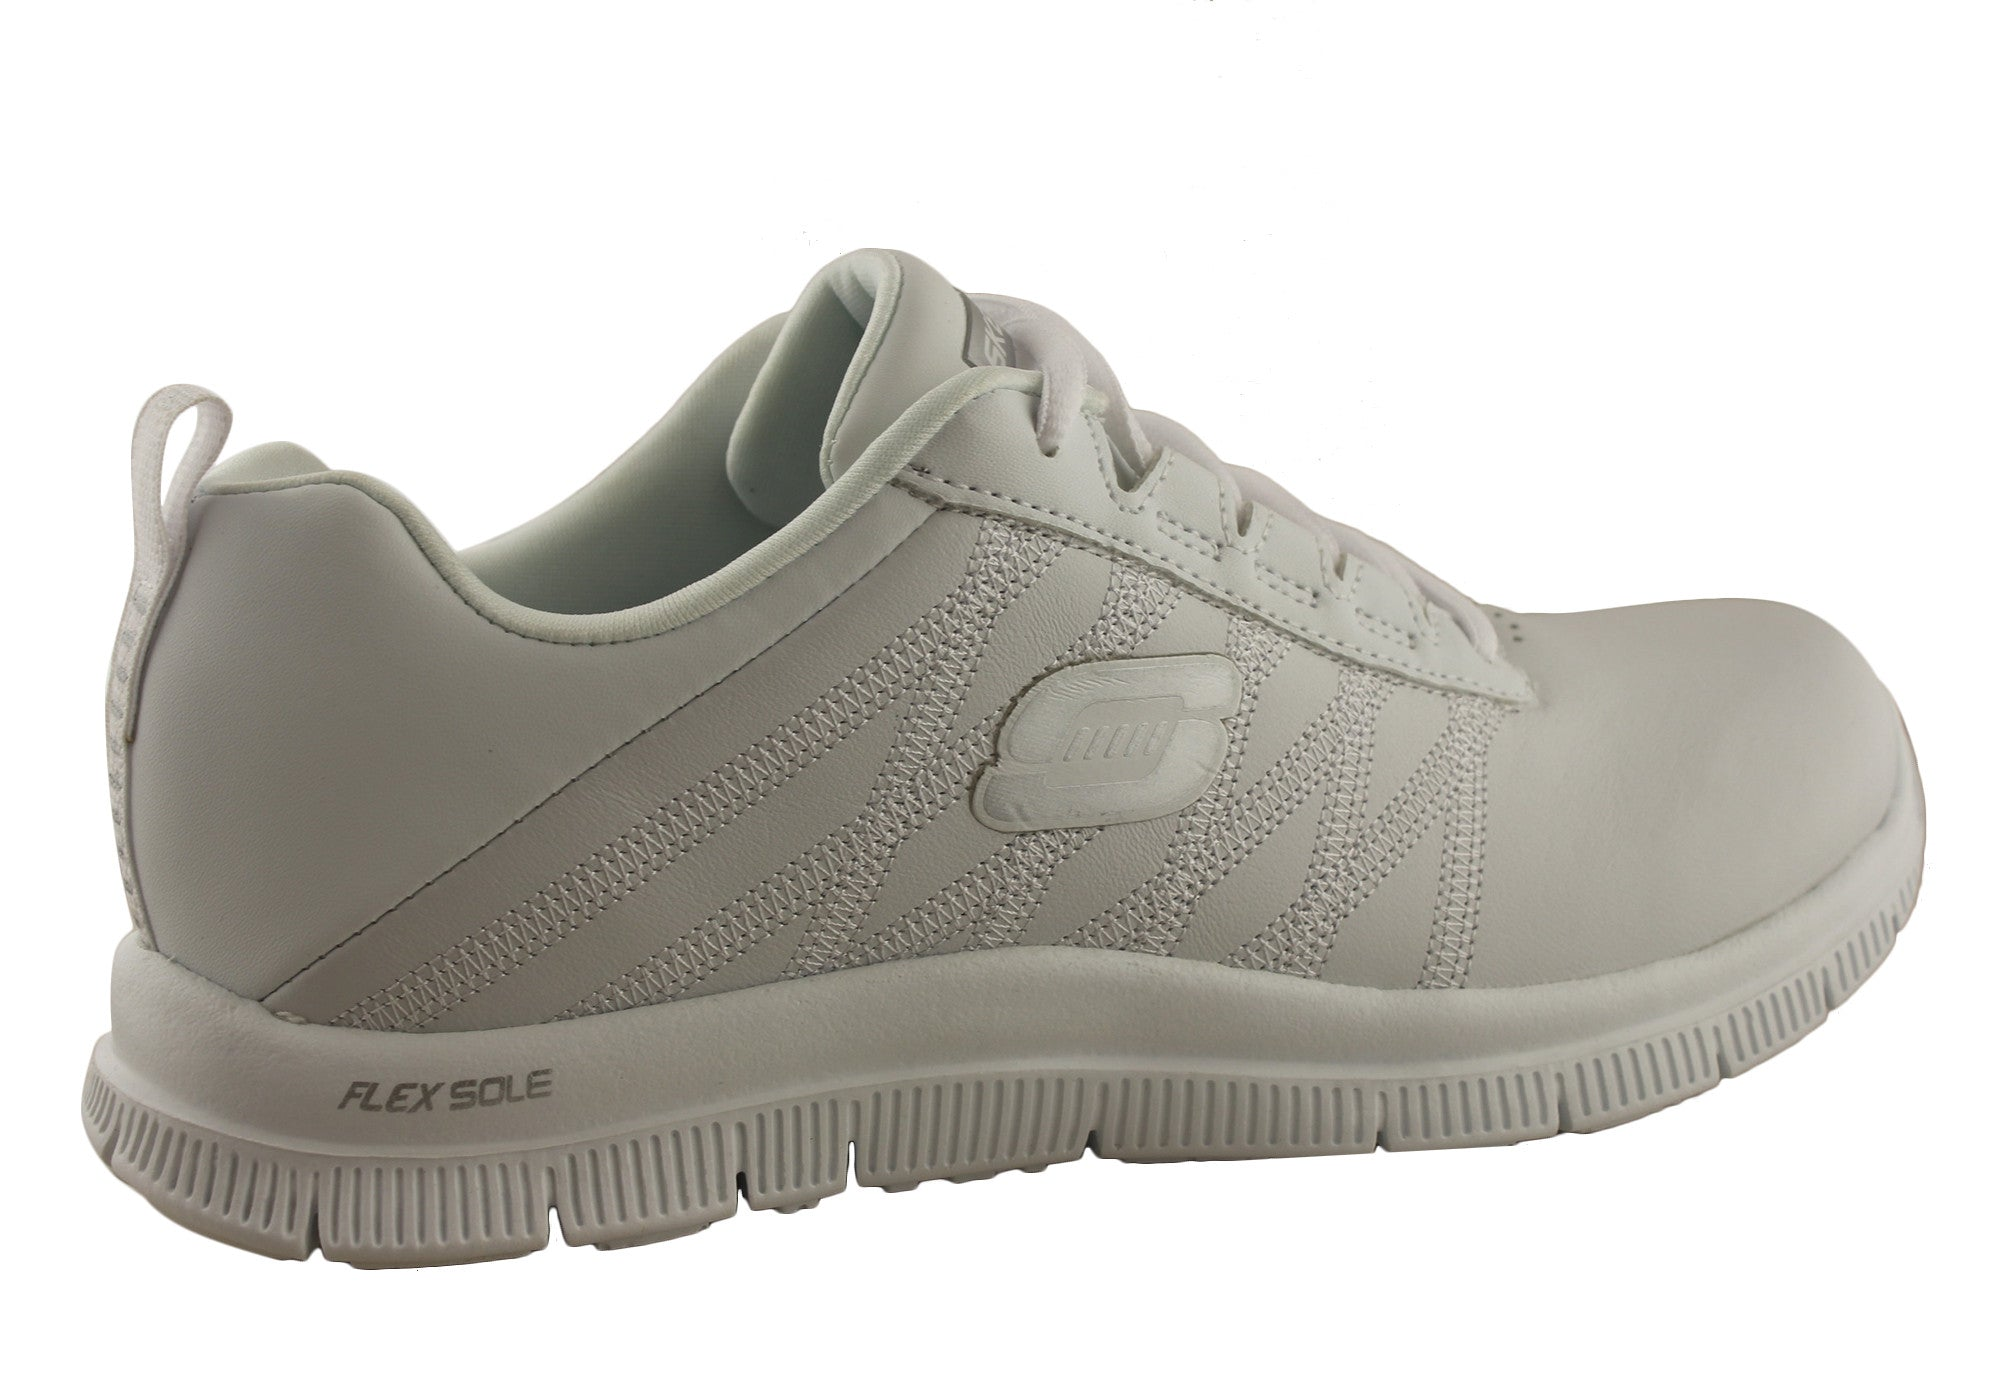 Skechers Flex Appeal Pure Tone Womens Leather Sneakers